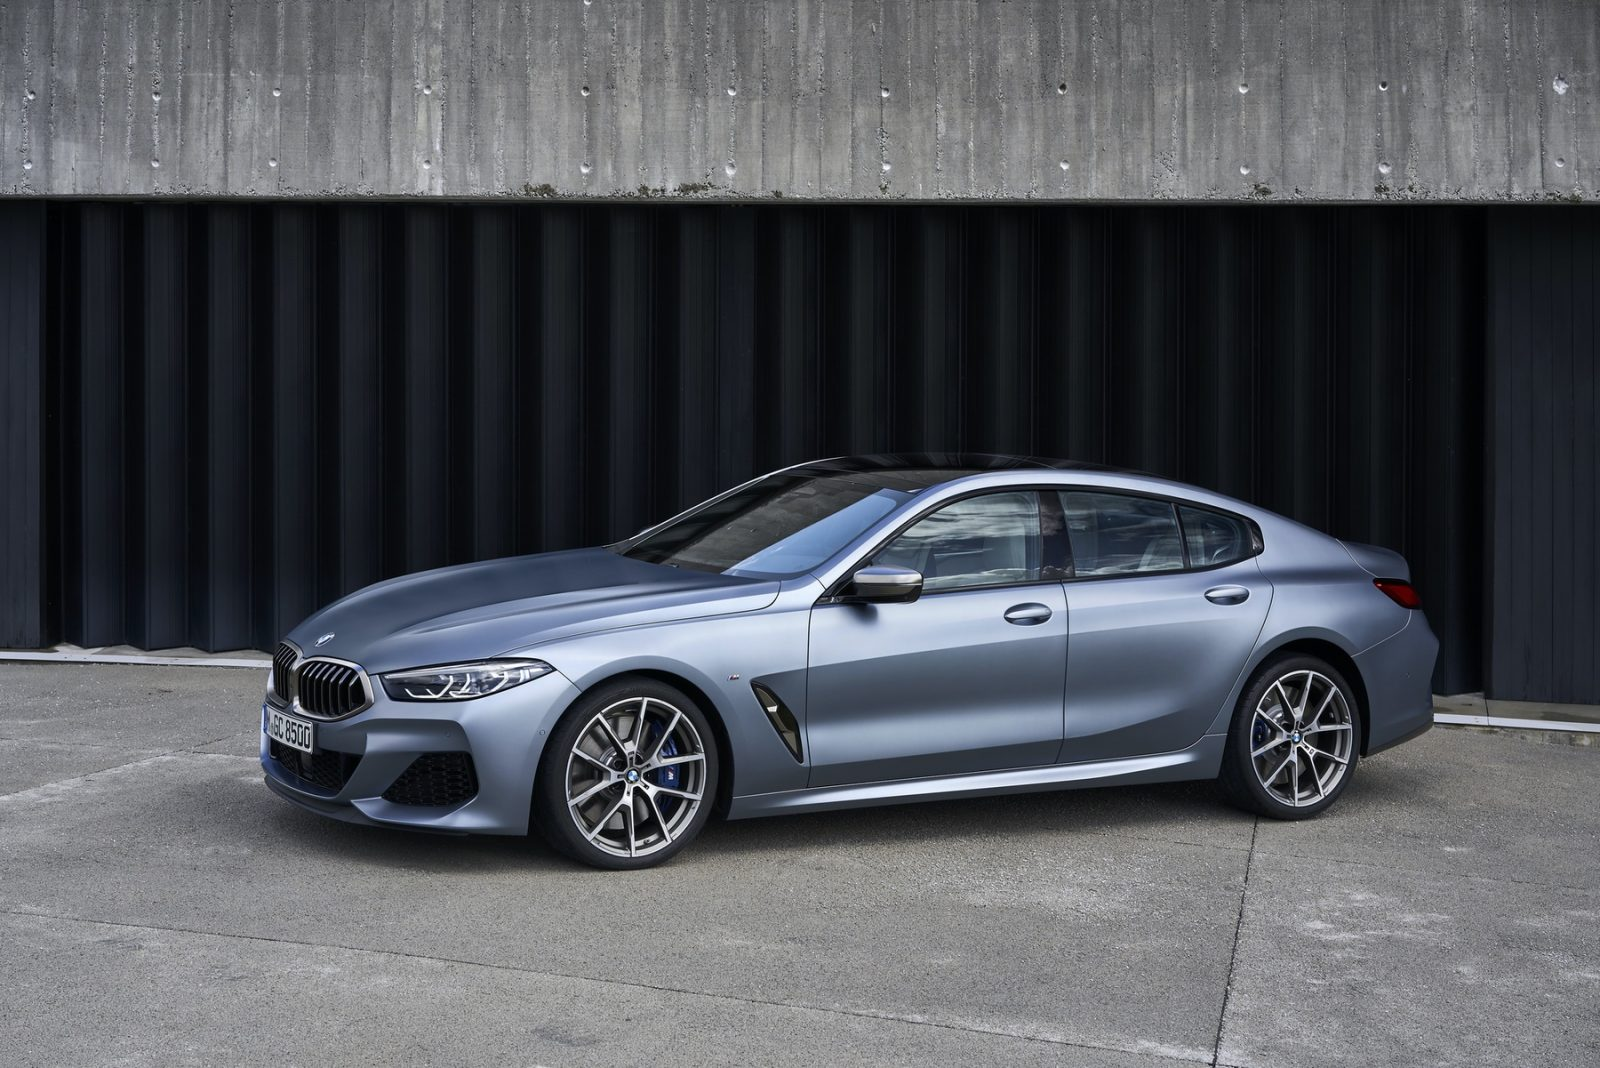 2020 8 series gran coupe